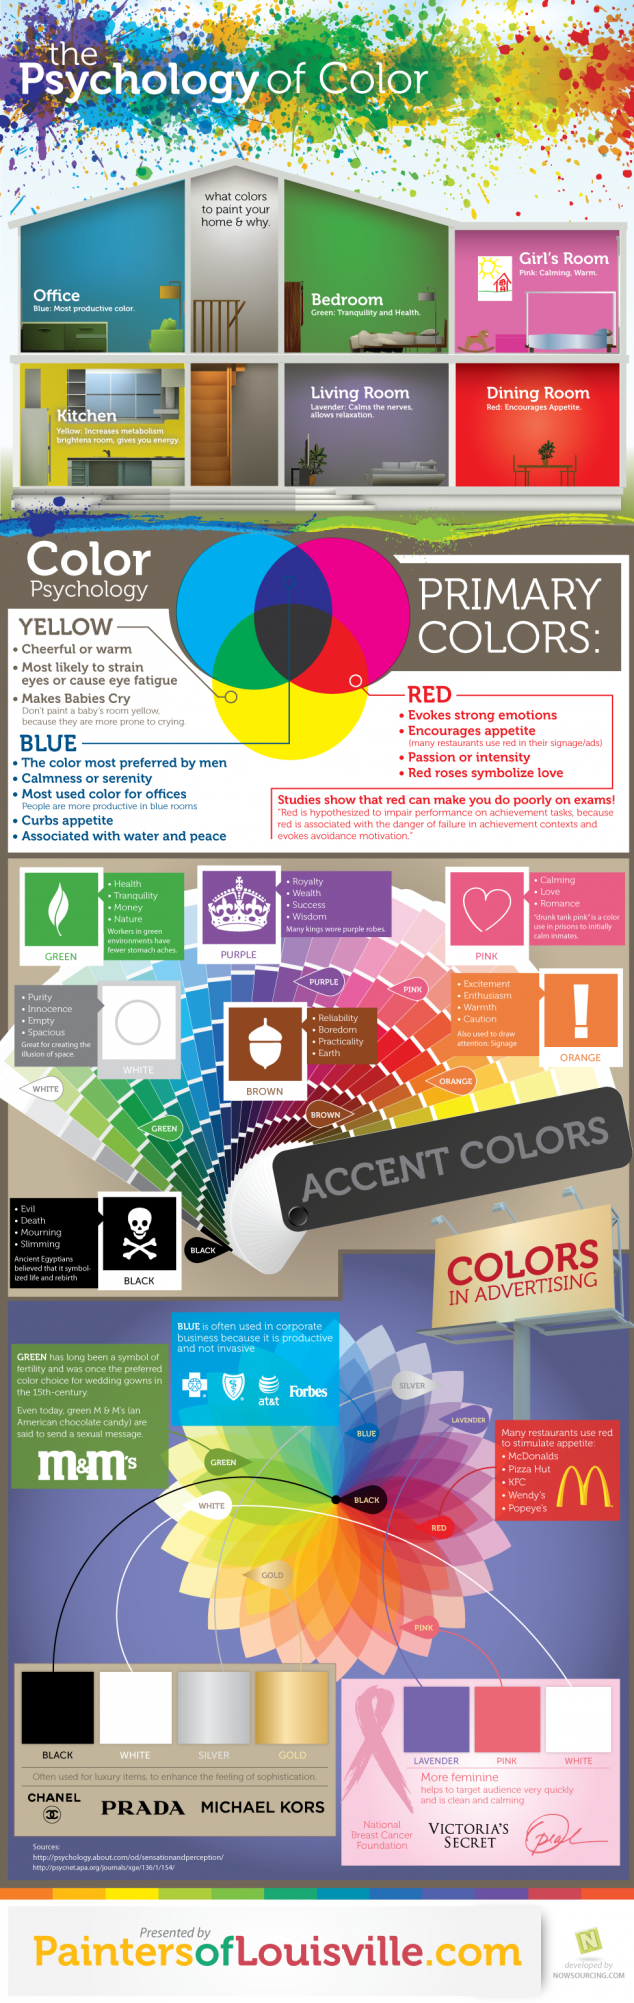 Infographic outlining the psychology of color